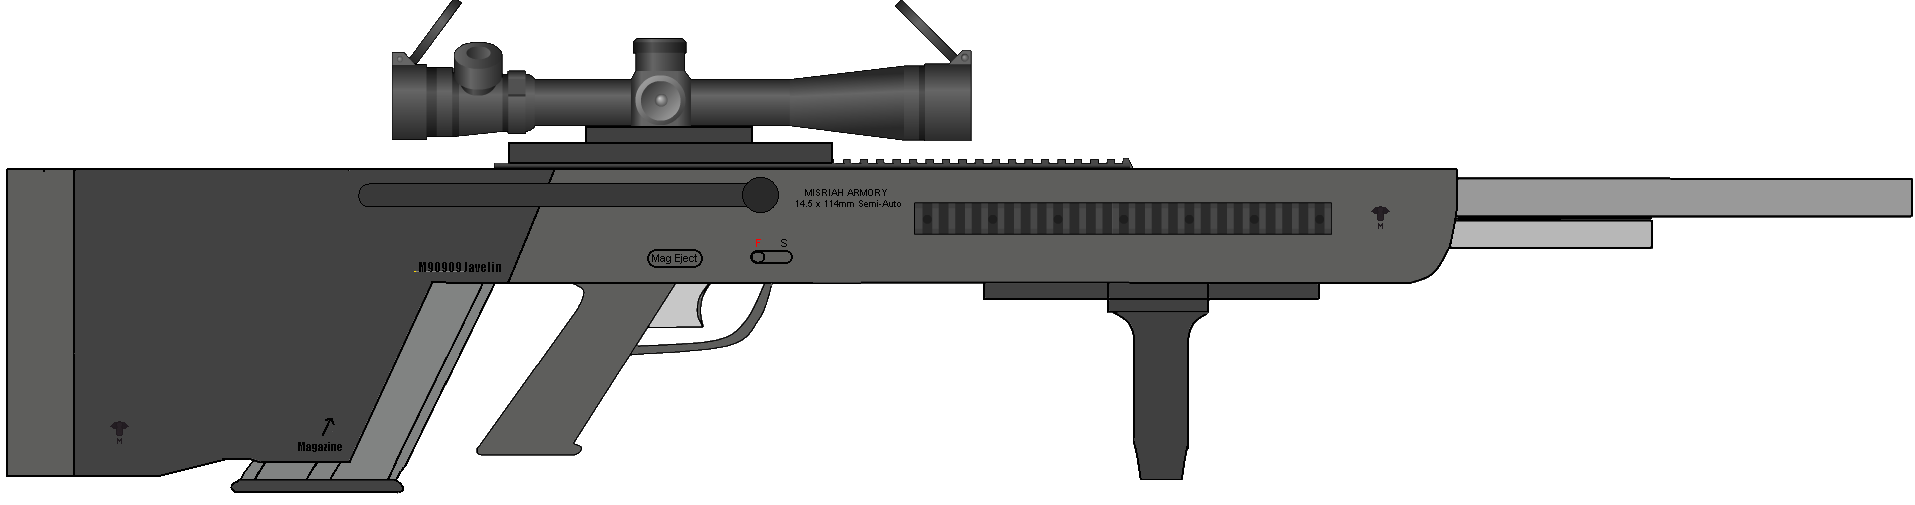 M909 Special Applications Scoped Rifle